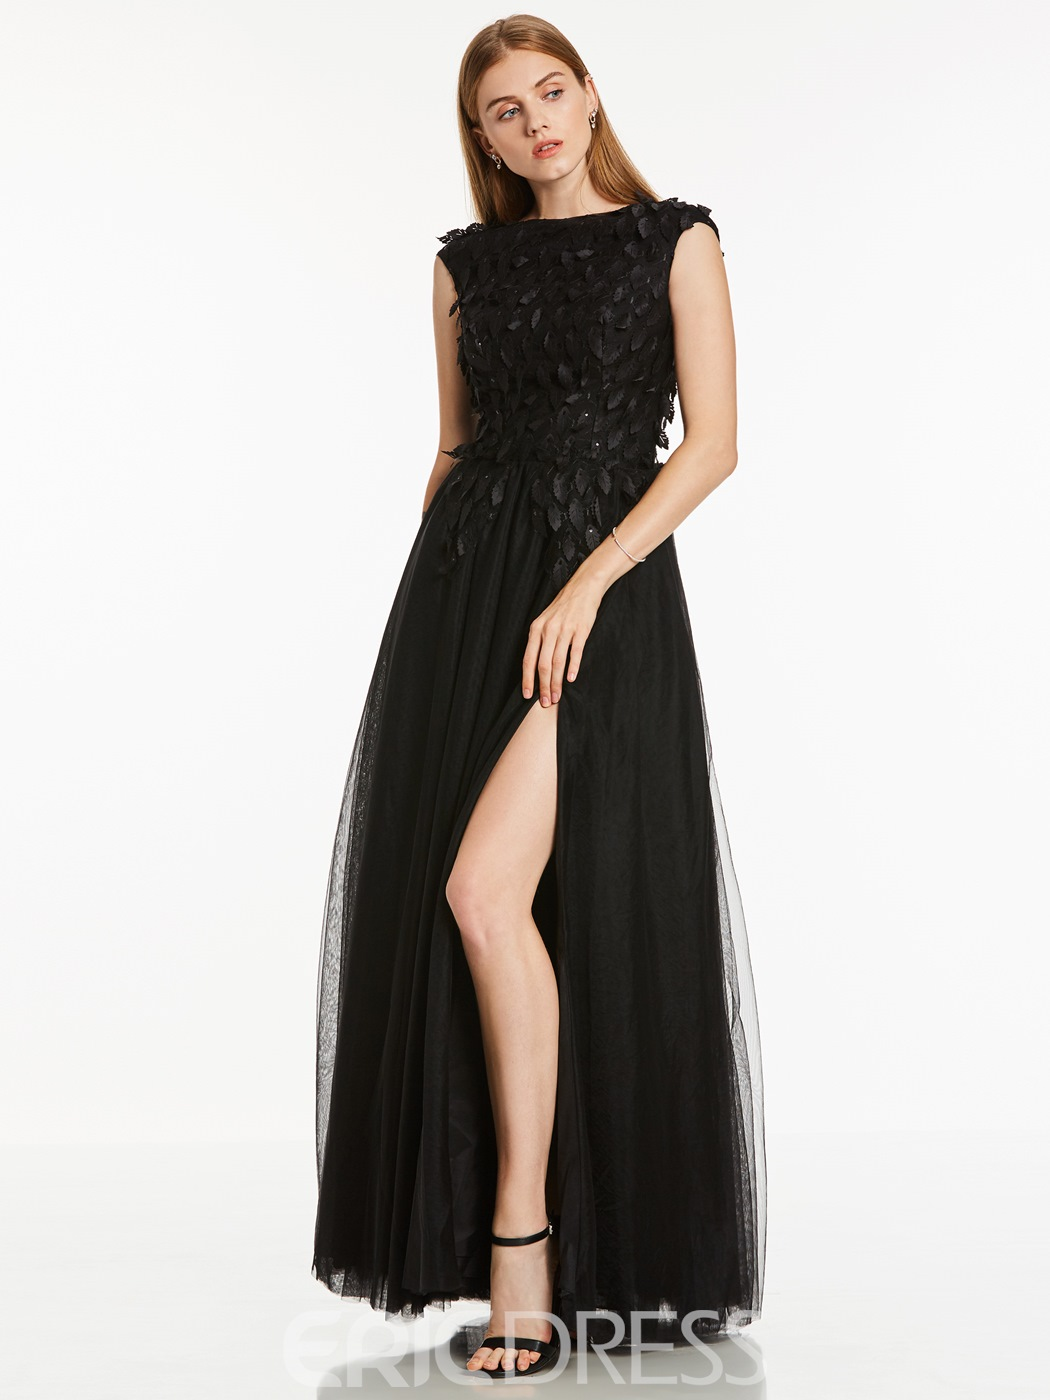 Ericdress Scoop Neck Appliques A Line Evening Dress With Side Slit